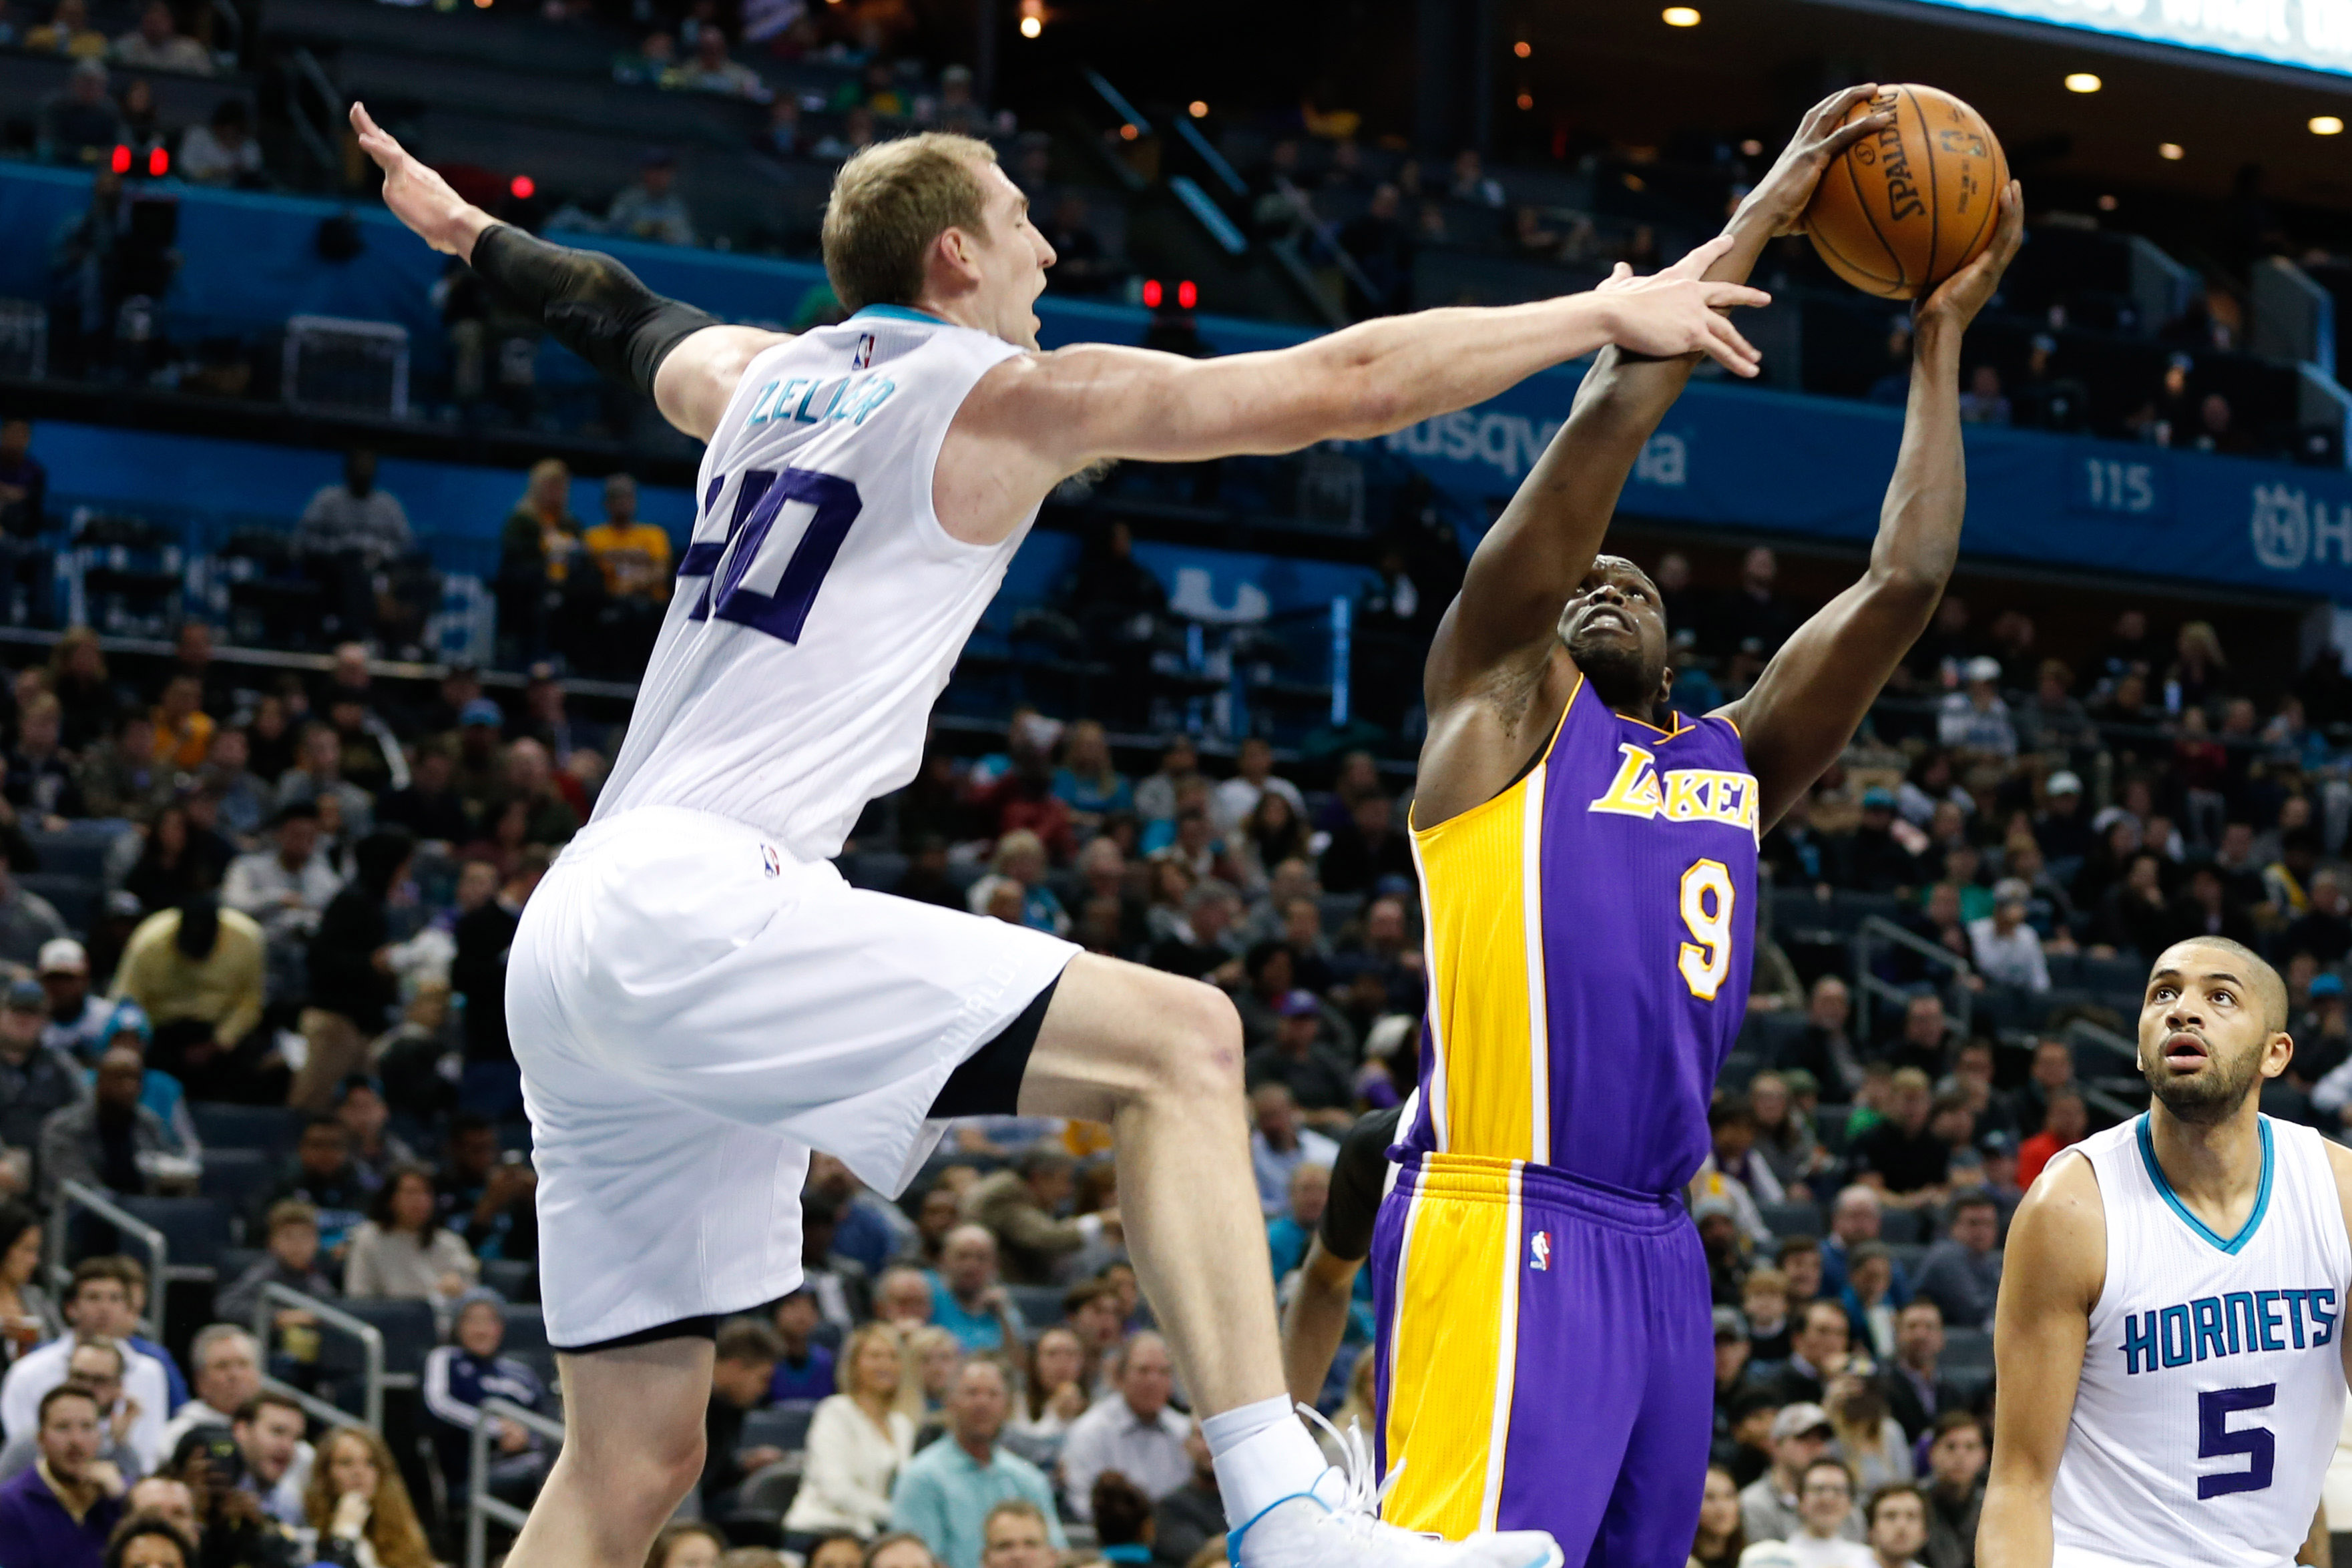 Dec 20, 2016; Charlotte, NC, USA; Los Angeles Lakers forward Luol Deng (9) goes up for a shot against Charlotte Hornets center Cody Zeller (40) in the first half at Spectrum Center. Mandatory Credit: Jeremy Brevard-USA TODAY Sports